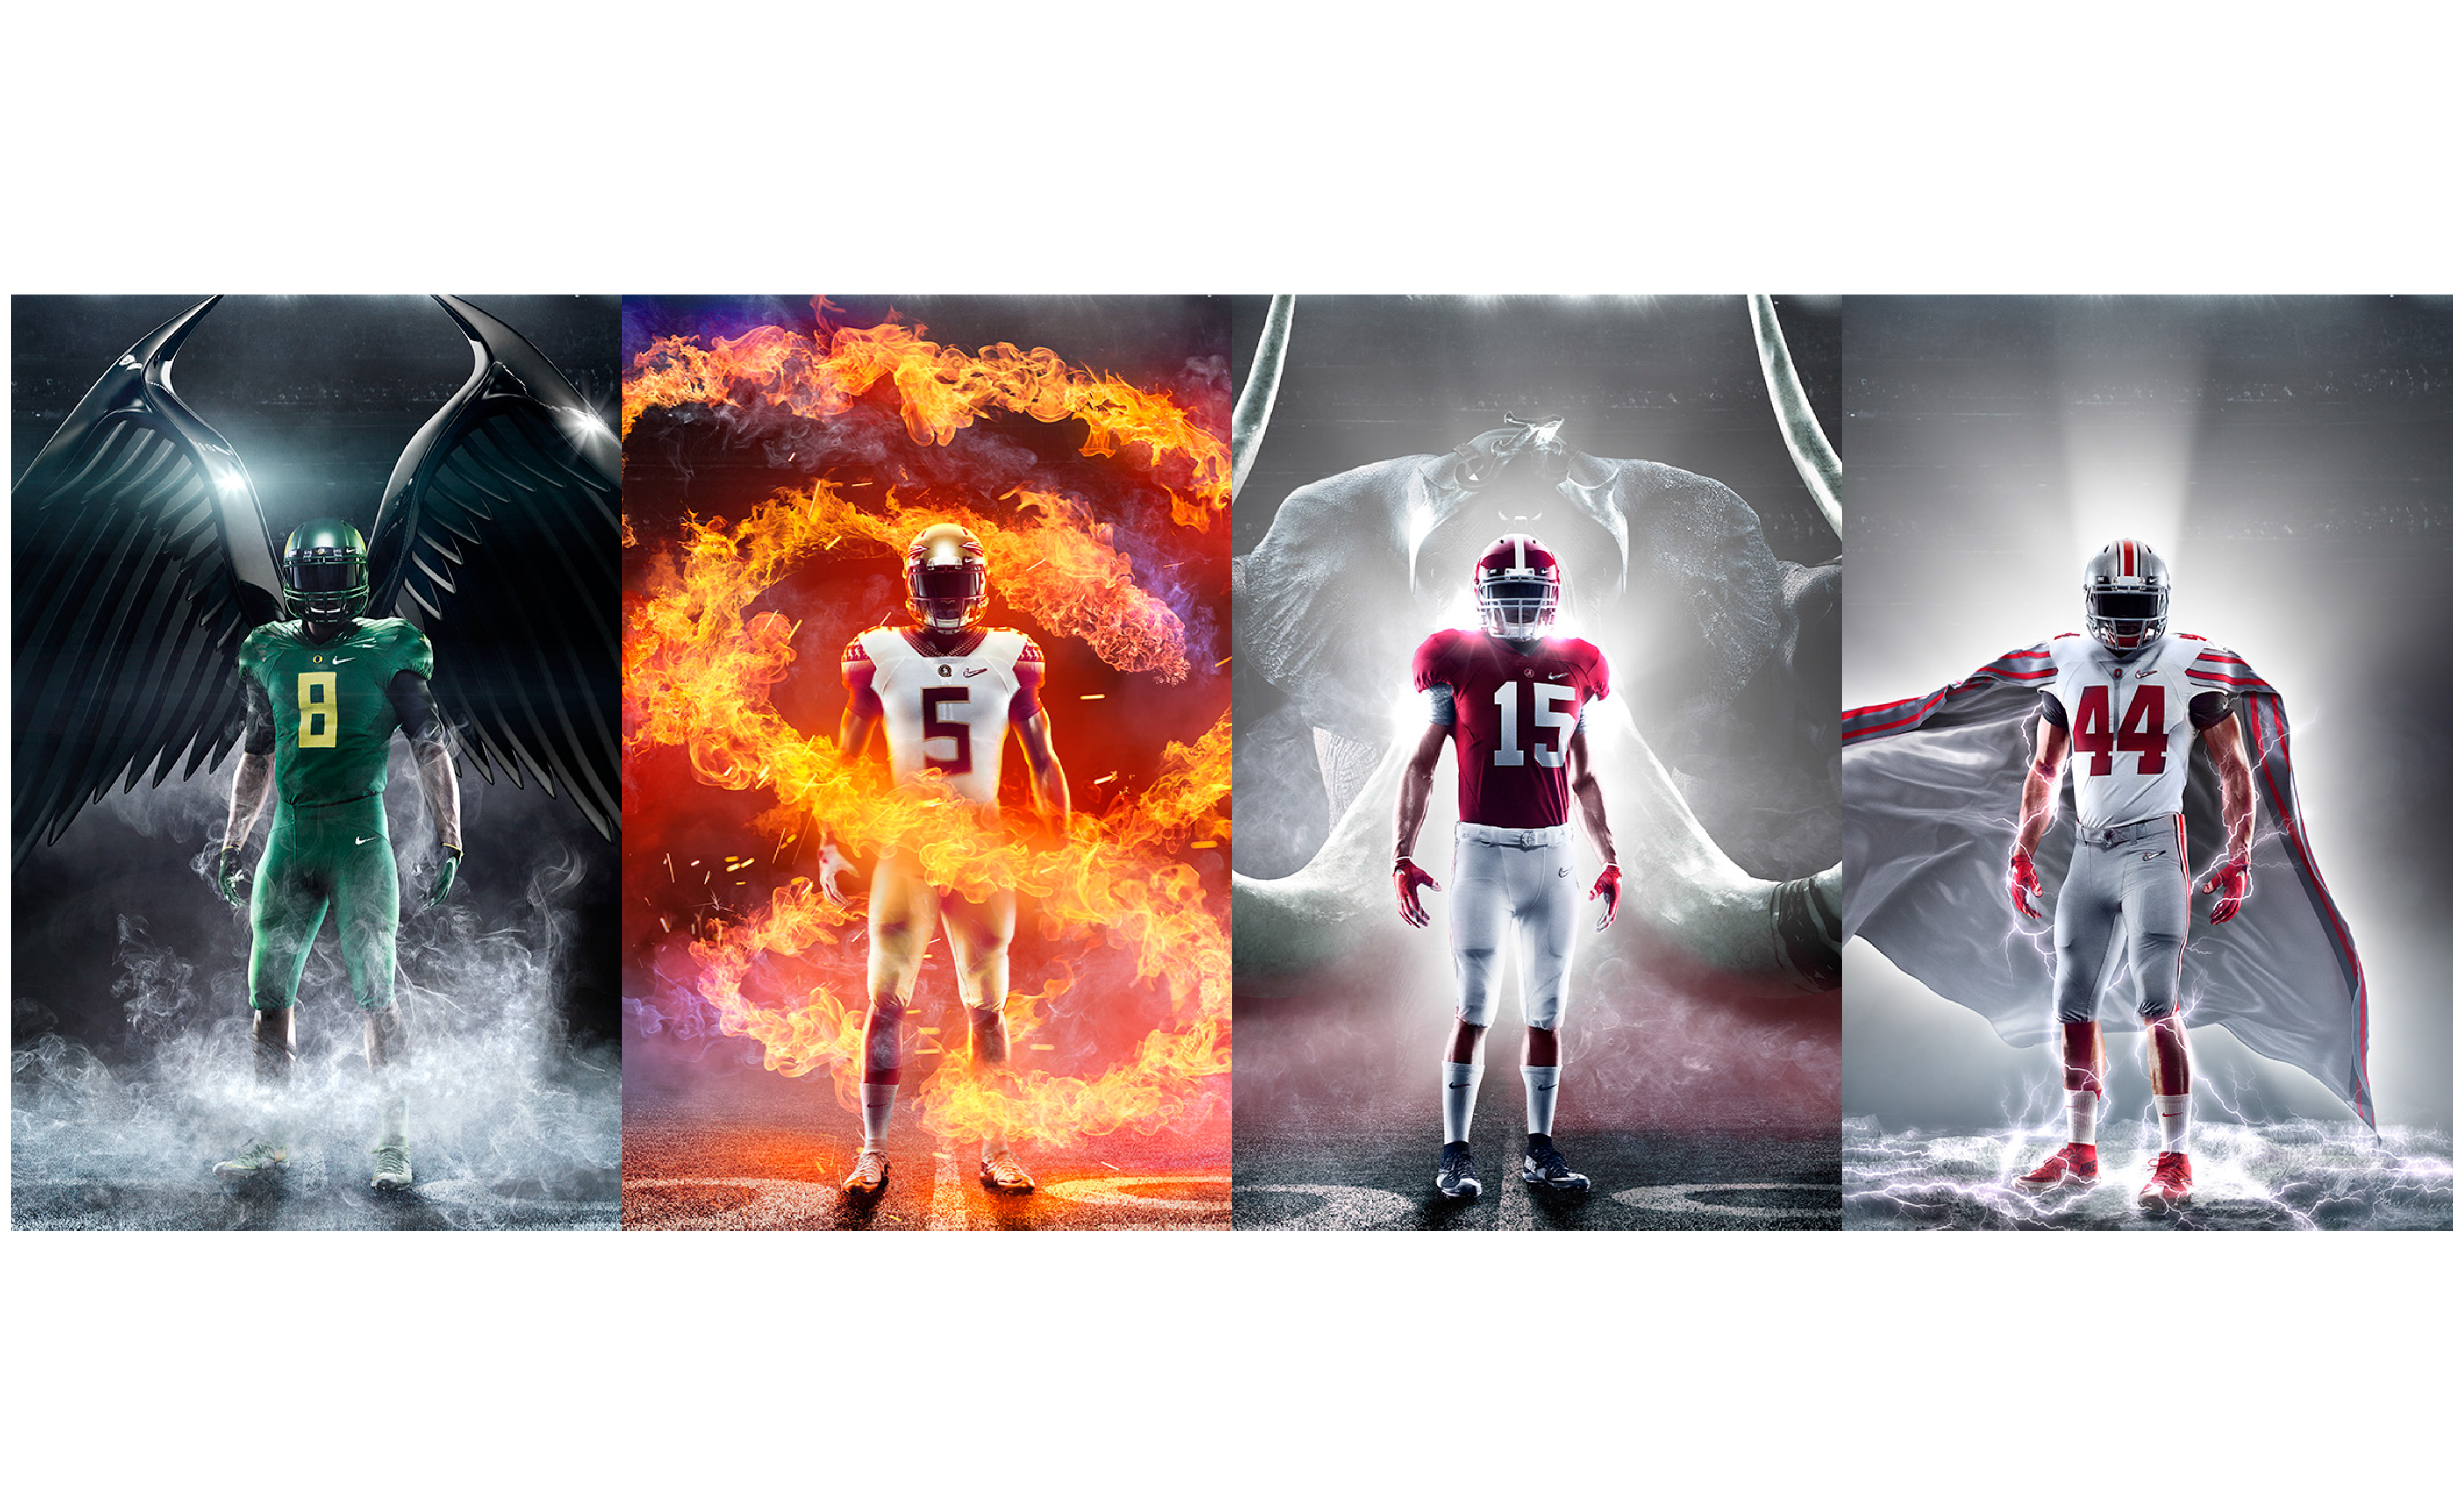 Four Nike-Sponsored Teams Battle for College Football Playoff Title